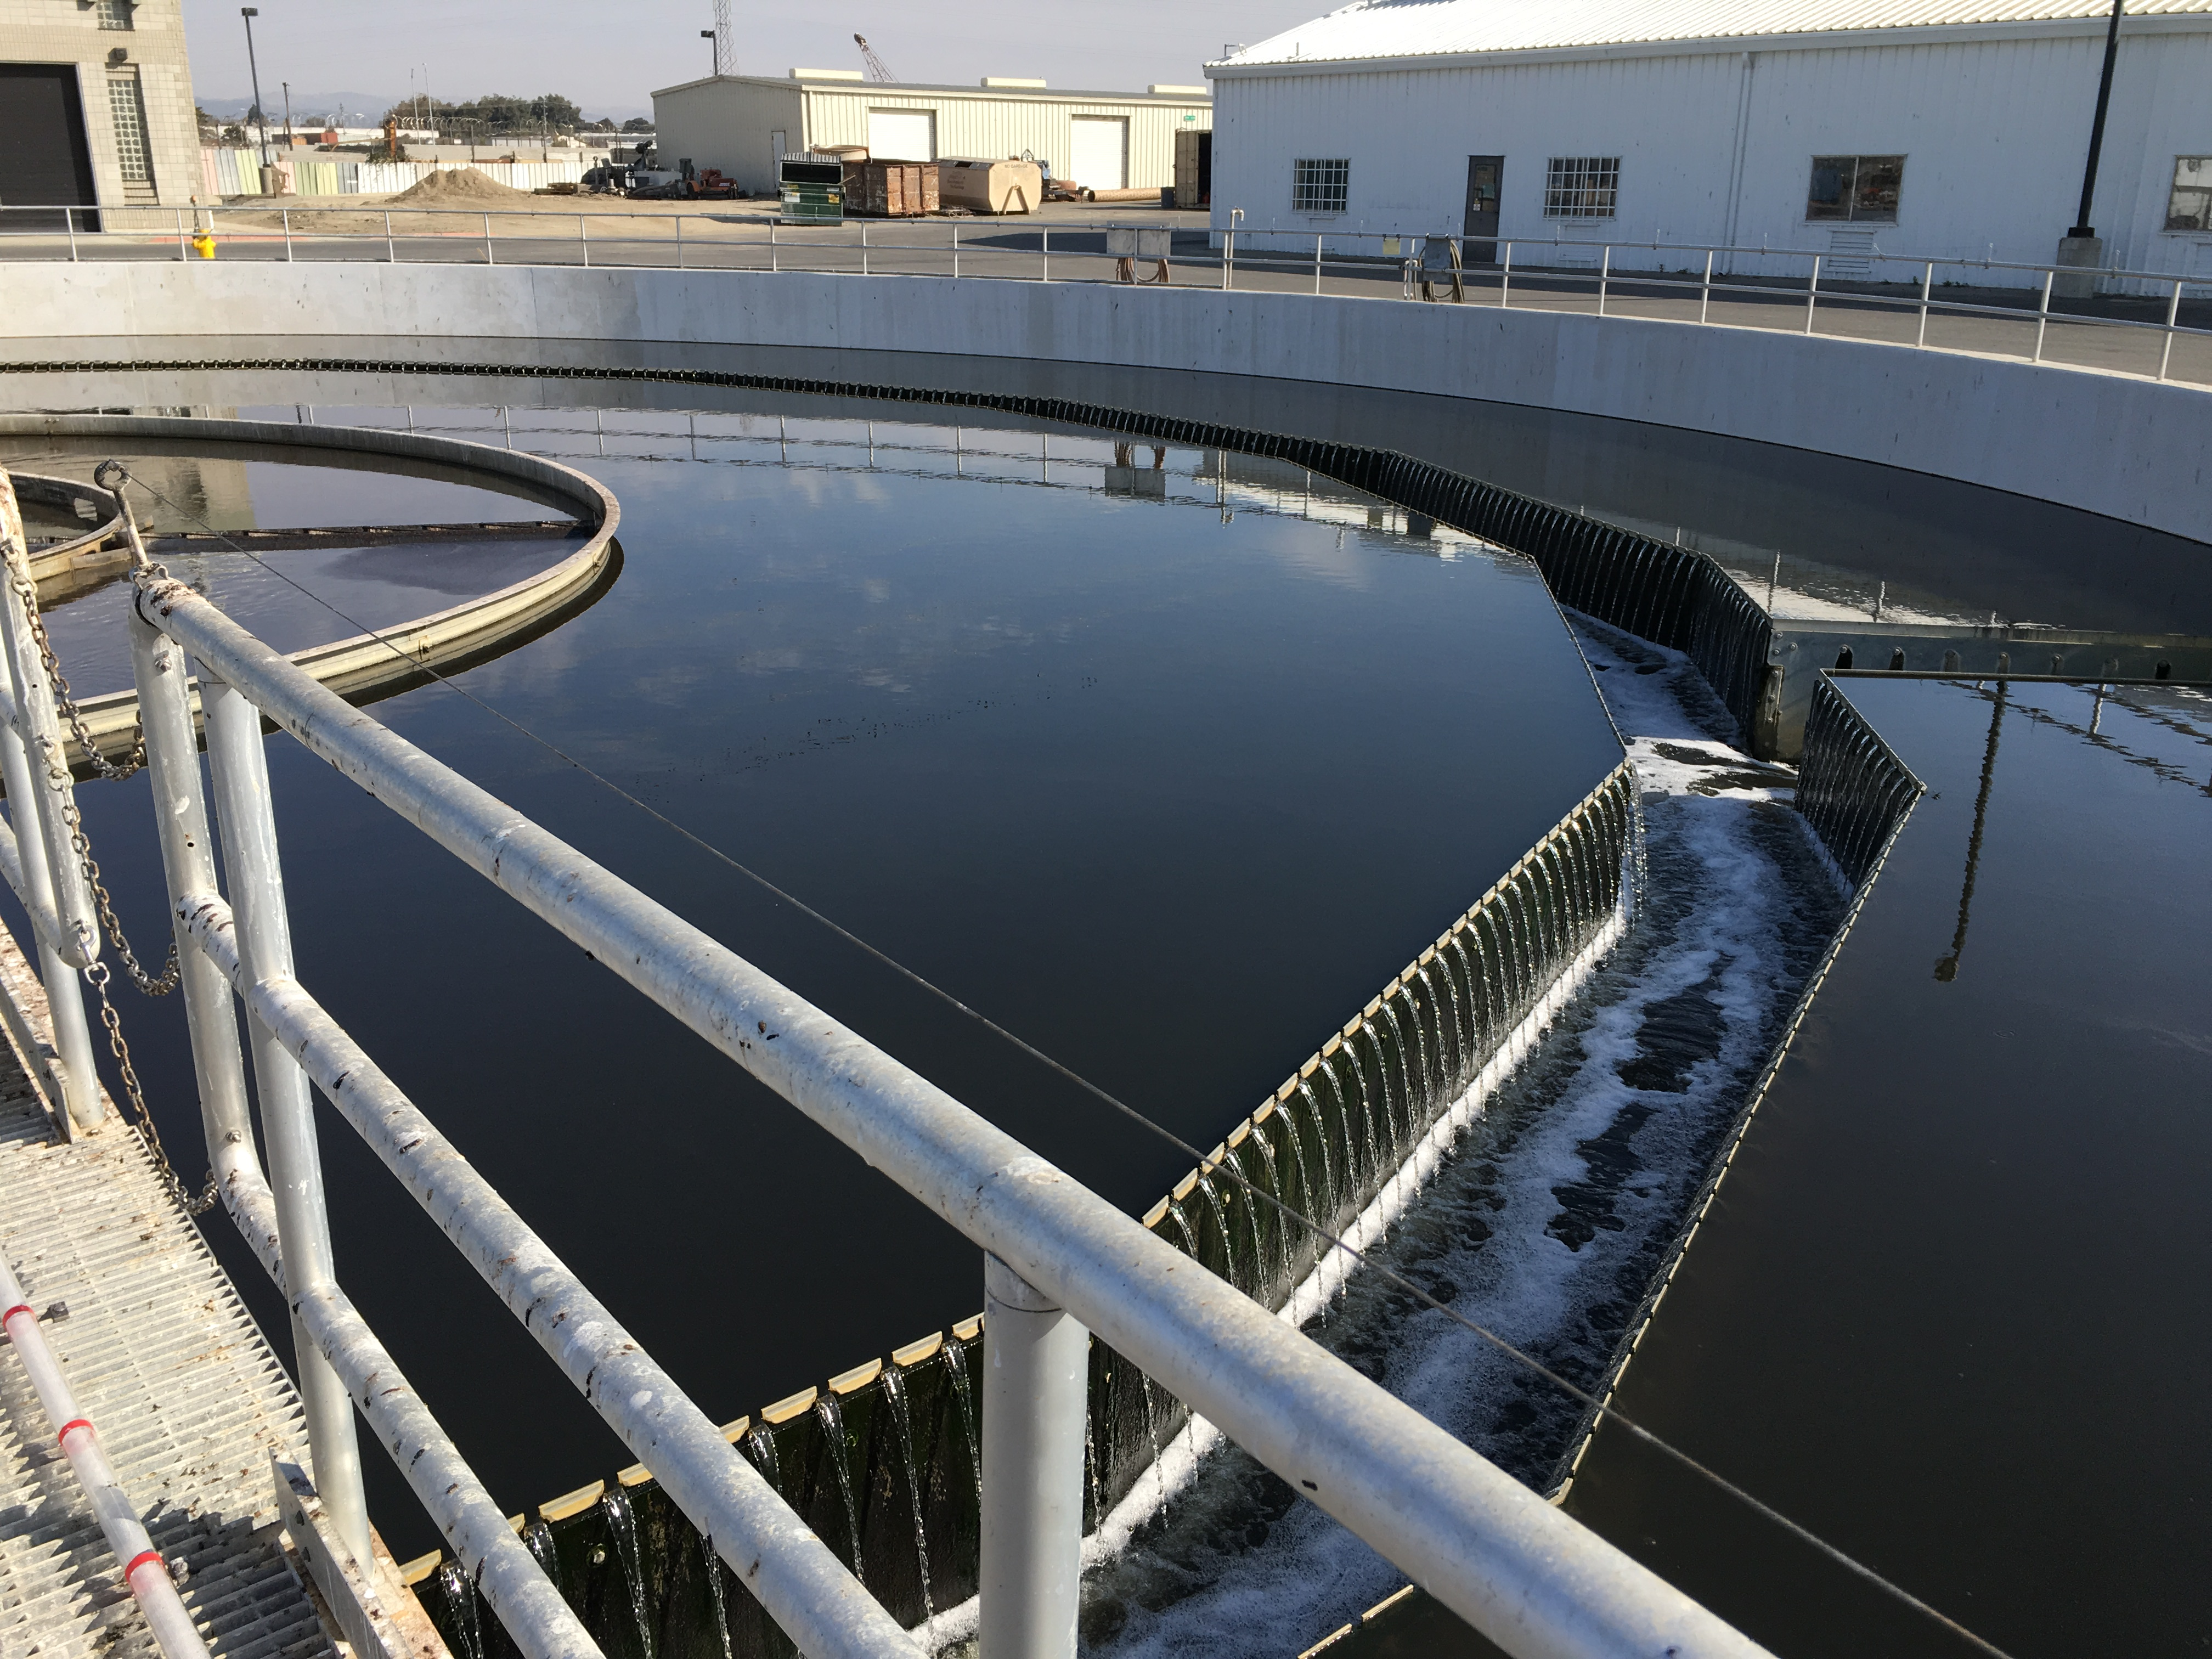 Secondary clarify removes suspended solids, organic matter, which are then thickened and broken down in anaerobic digesters. The digesters produce biogas that fuel the on-site co-generation engine.